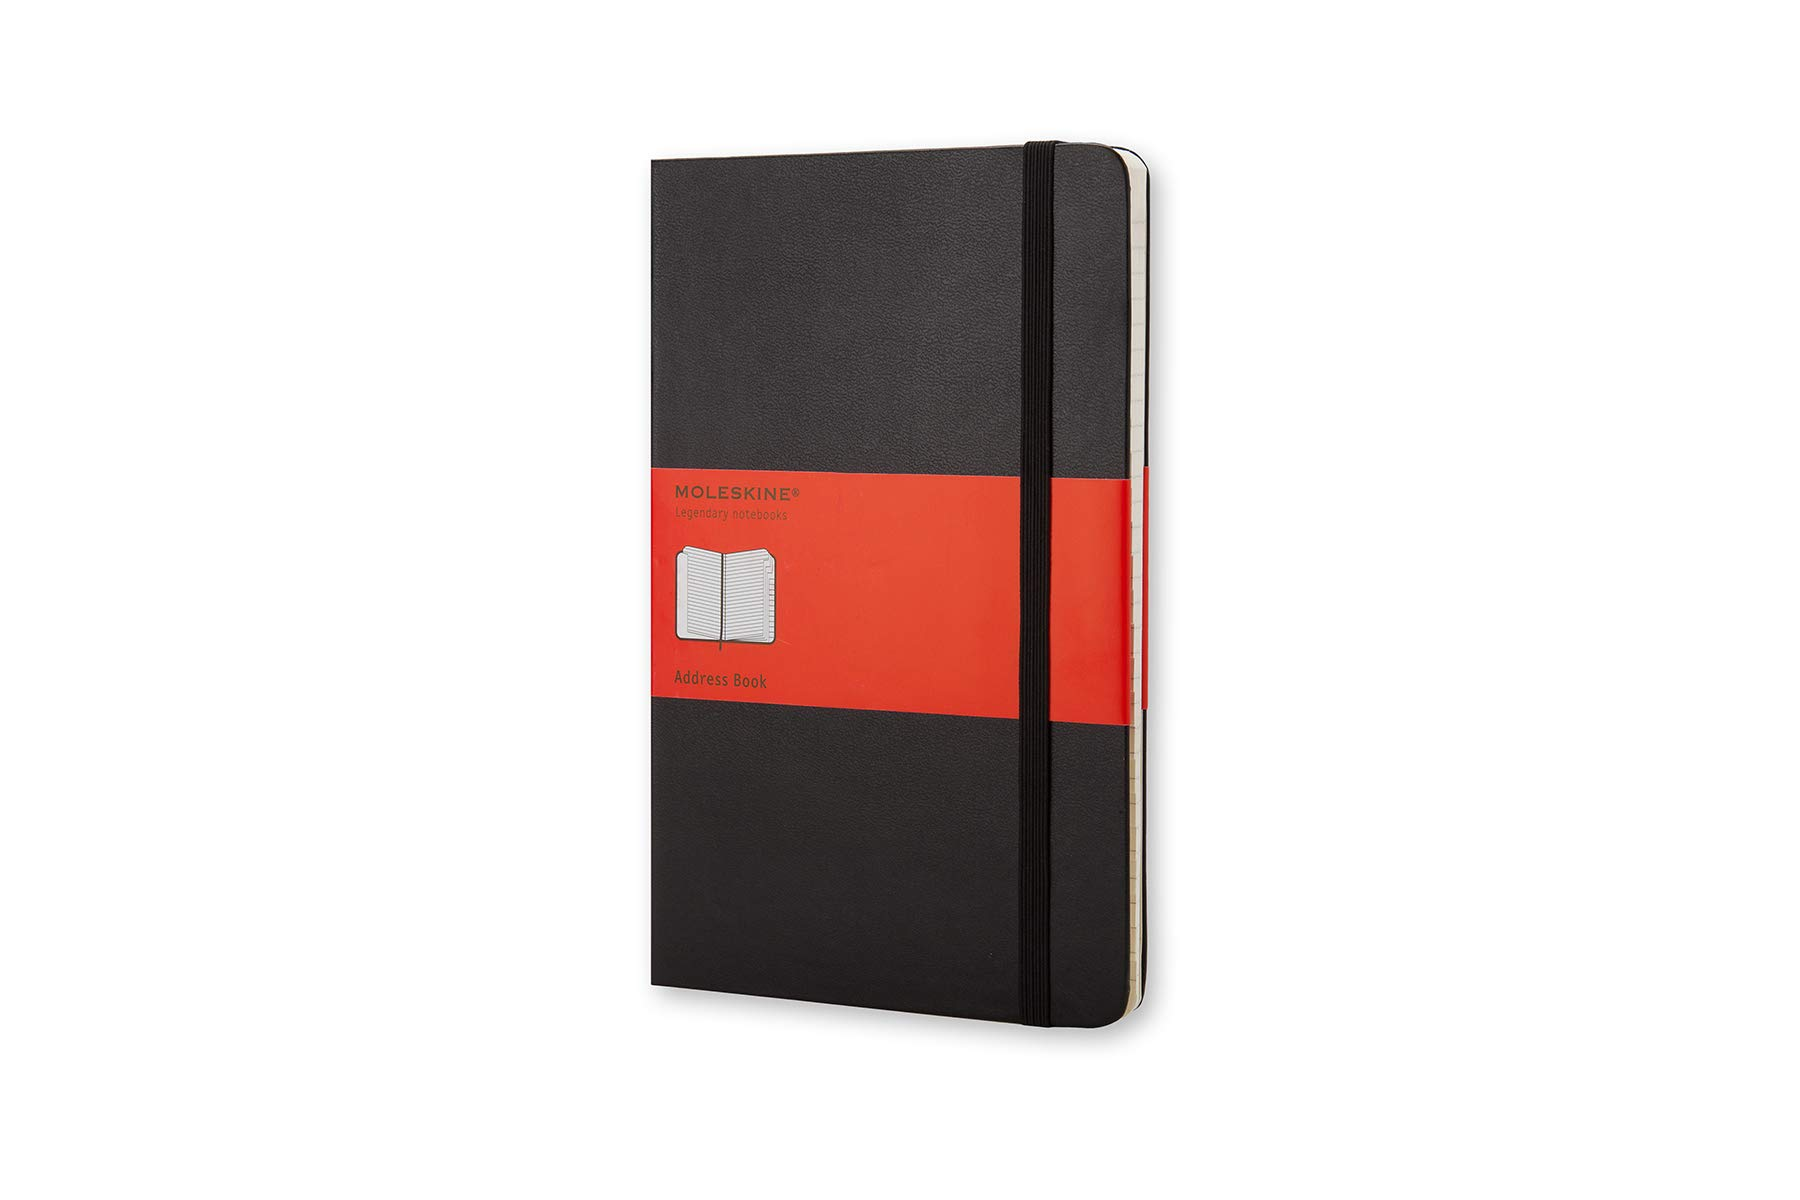 Moleskine PRO Address Book, Hard Cover, Large (5'' x 8.25'') Address Book, Black by Moleskine